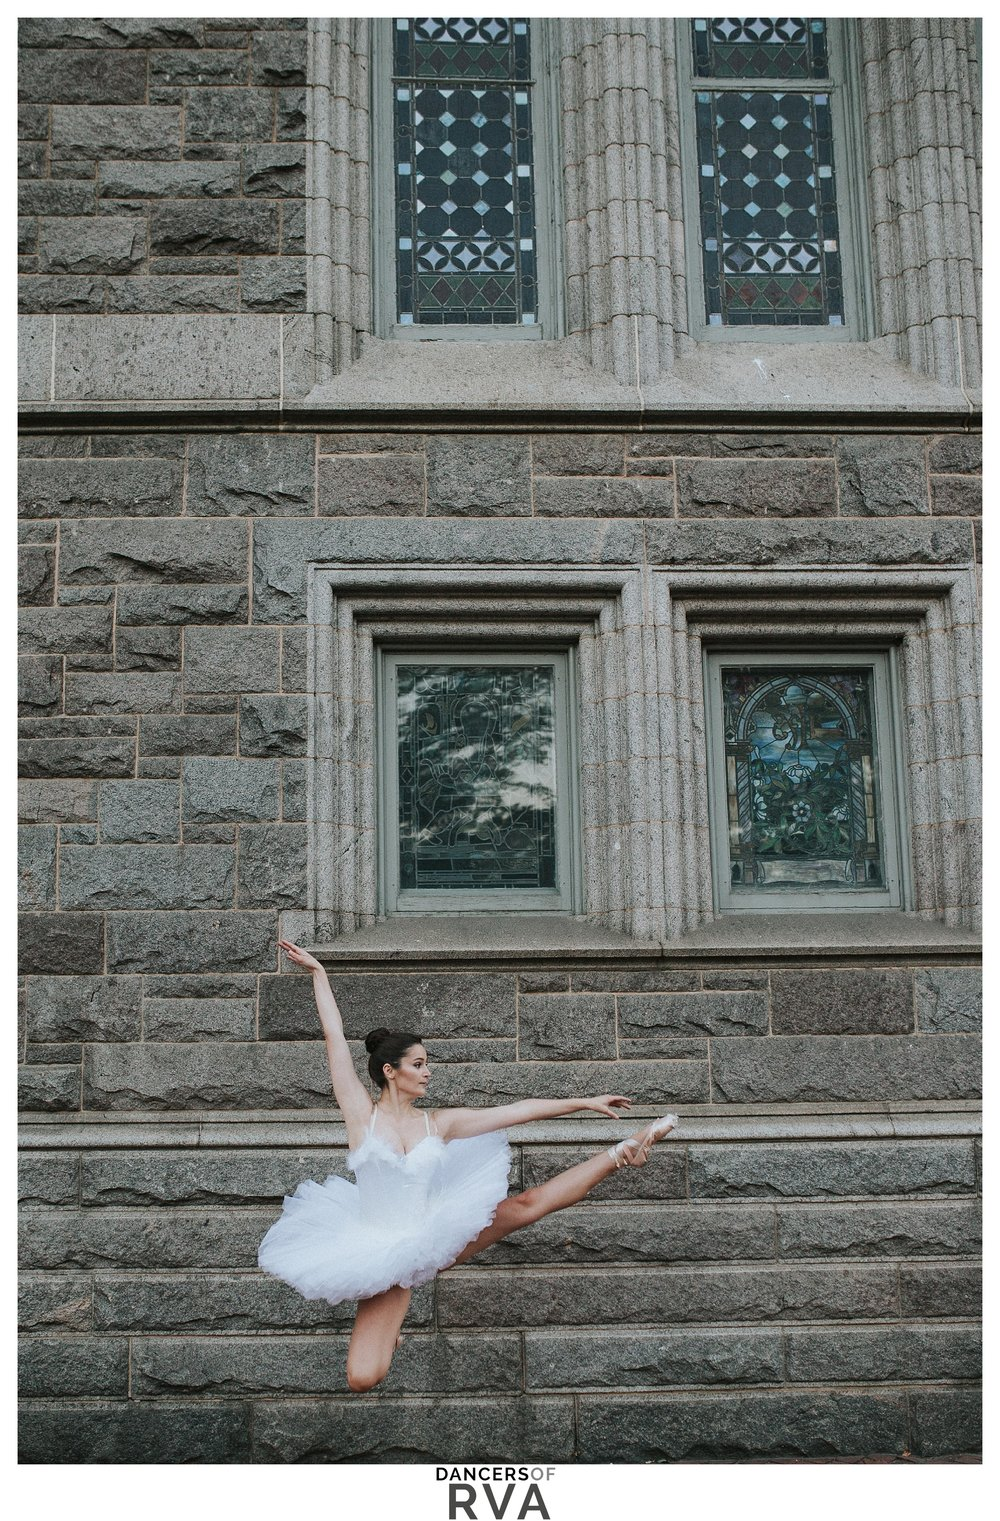 Ballet Dancer Stavna Ballet Company leaping in front of church Richmond VA VCU